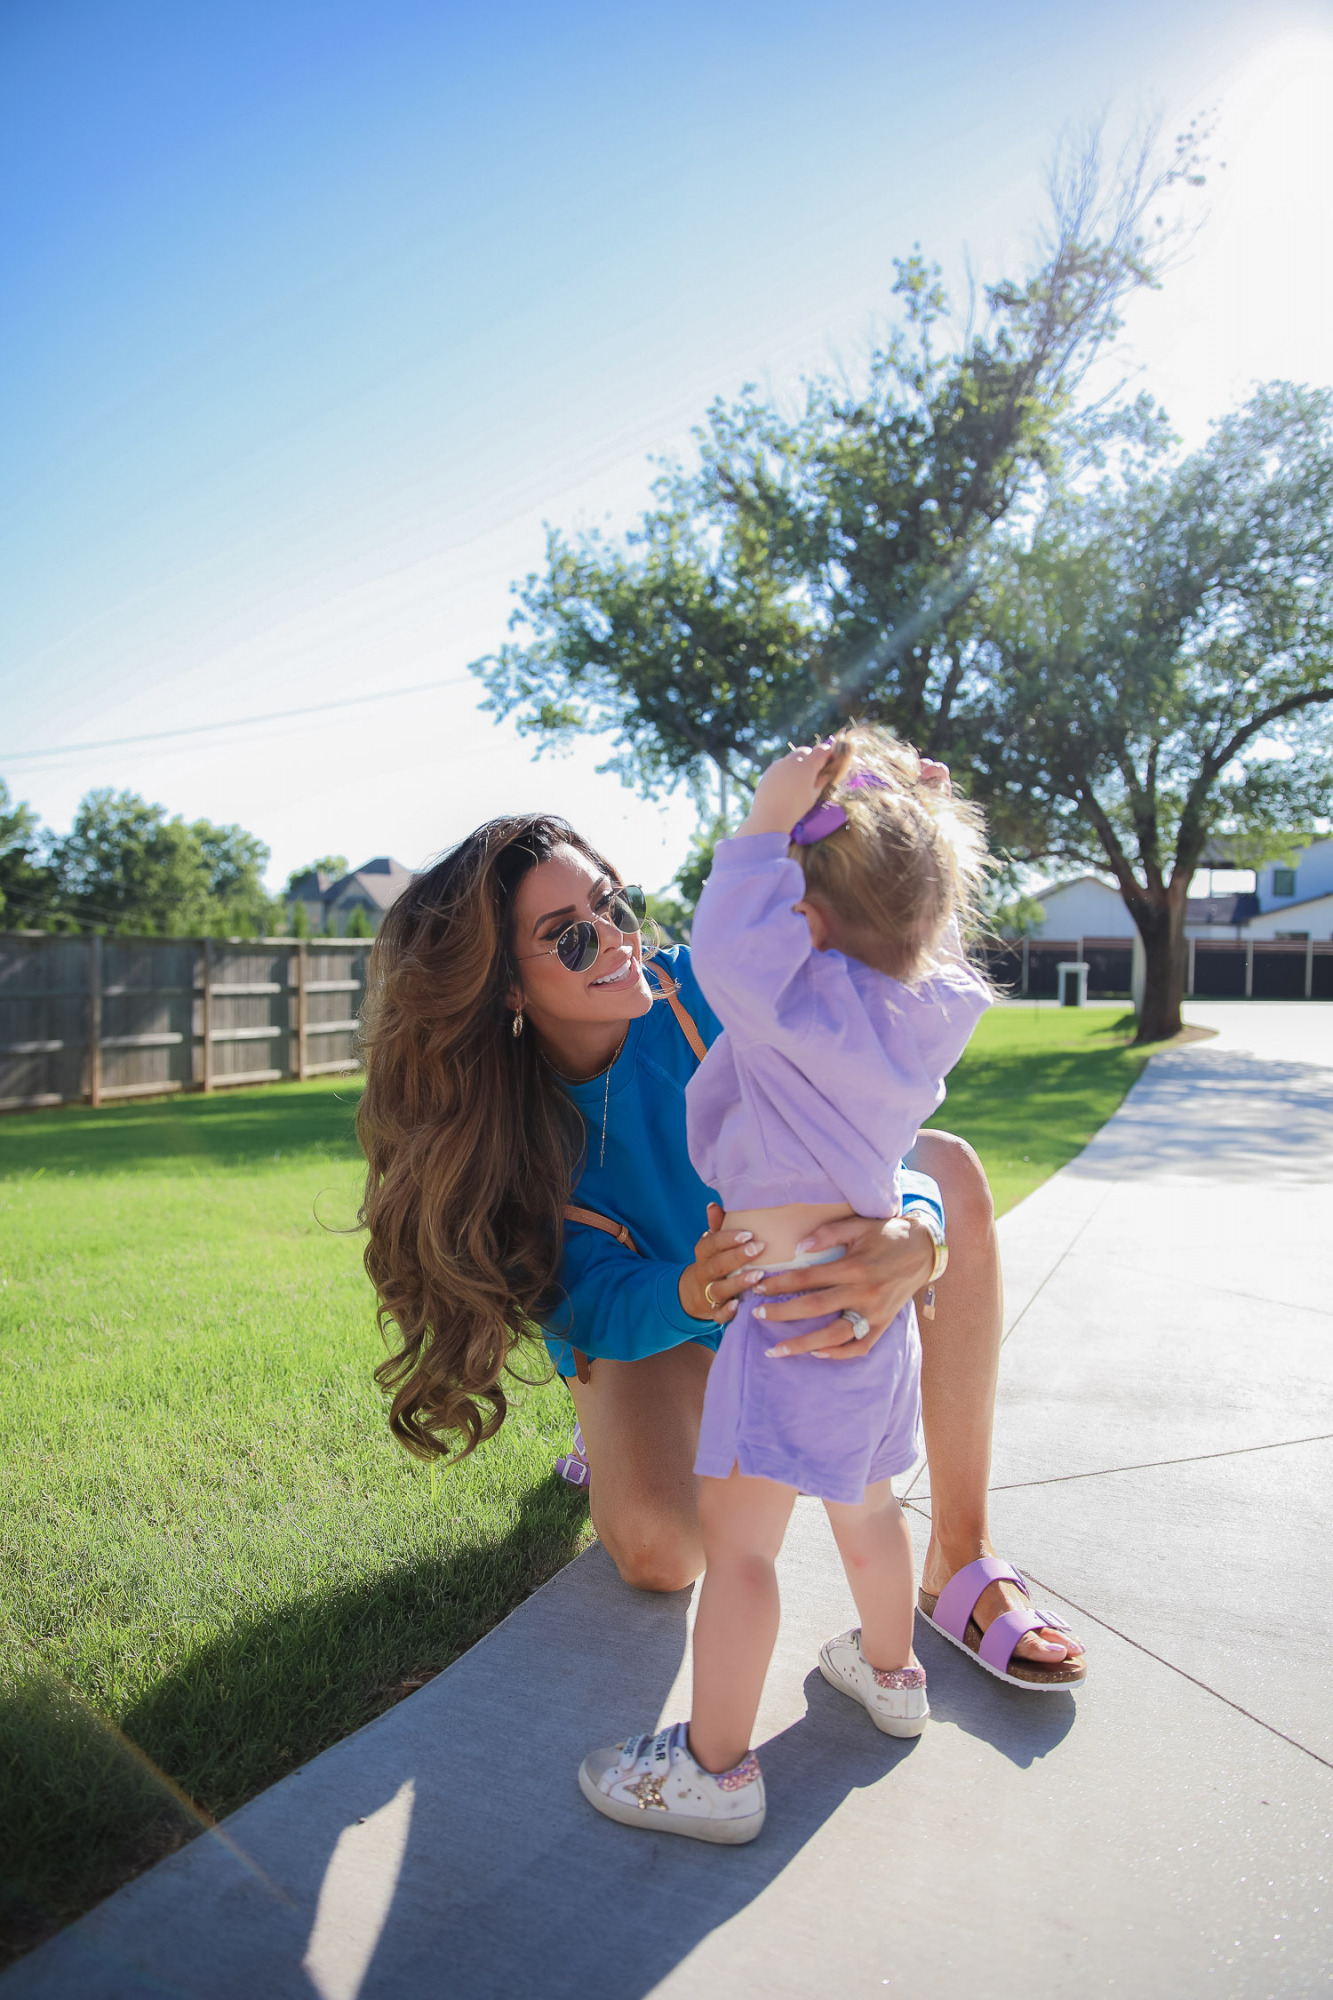 walmart fashion blog, best walmart fashion outfits blog instagramer, emily gemma, scoop walmart womens fashion, birkinstock dupes-6 | June Instagram Recap by popular US fashion blog, The Sweetest Thing: image of Emily Gemma and her daughter Sophie standing together outside and wearing a blue sweatshirt, purple strap sandals, purple loungewear set, Golden Goose sneakers, and purple hair bows.